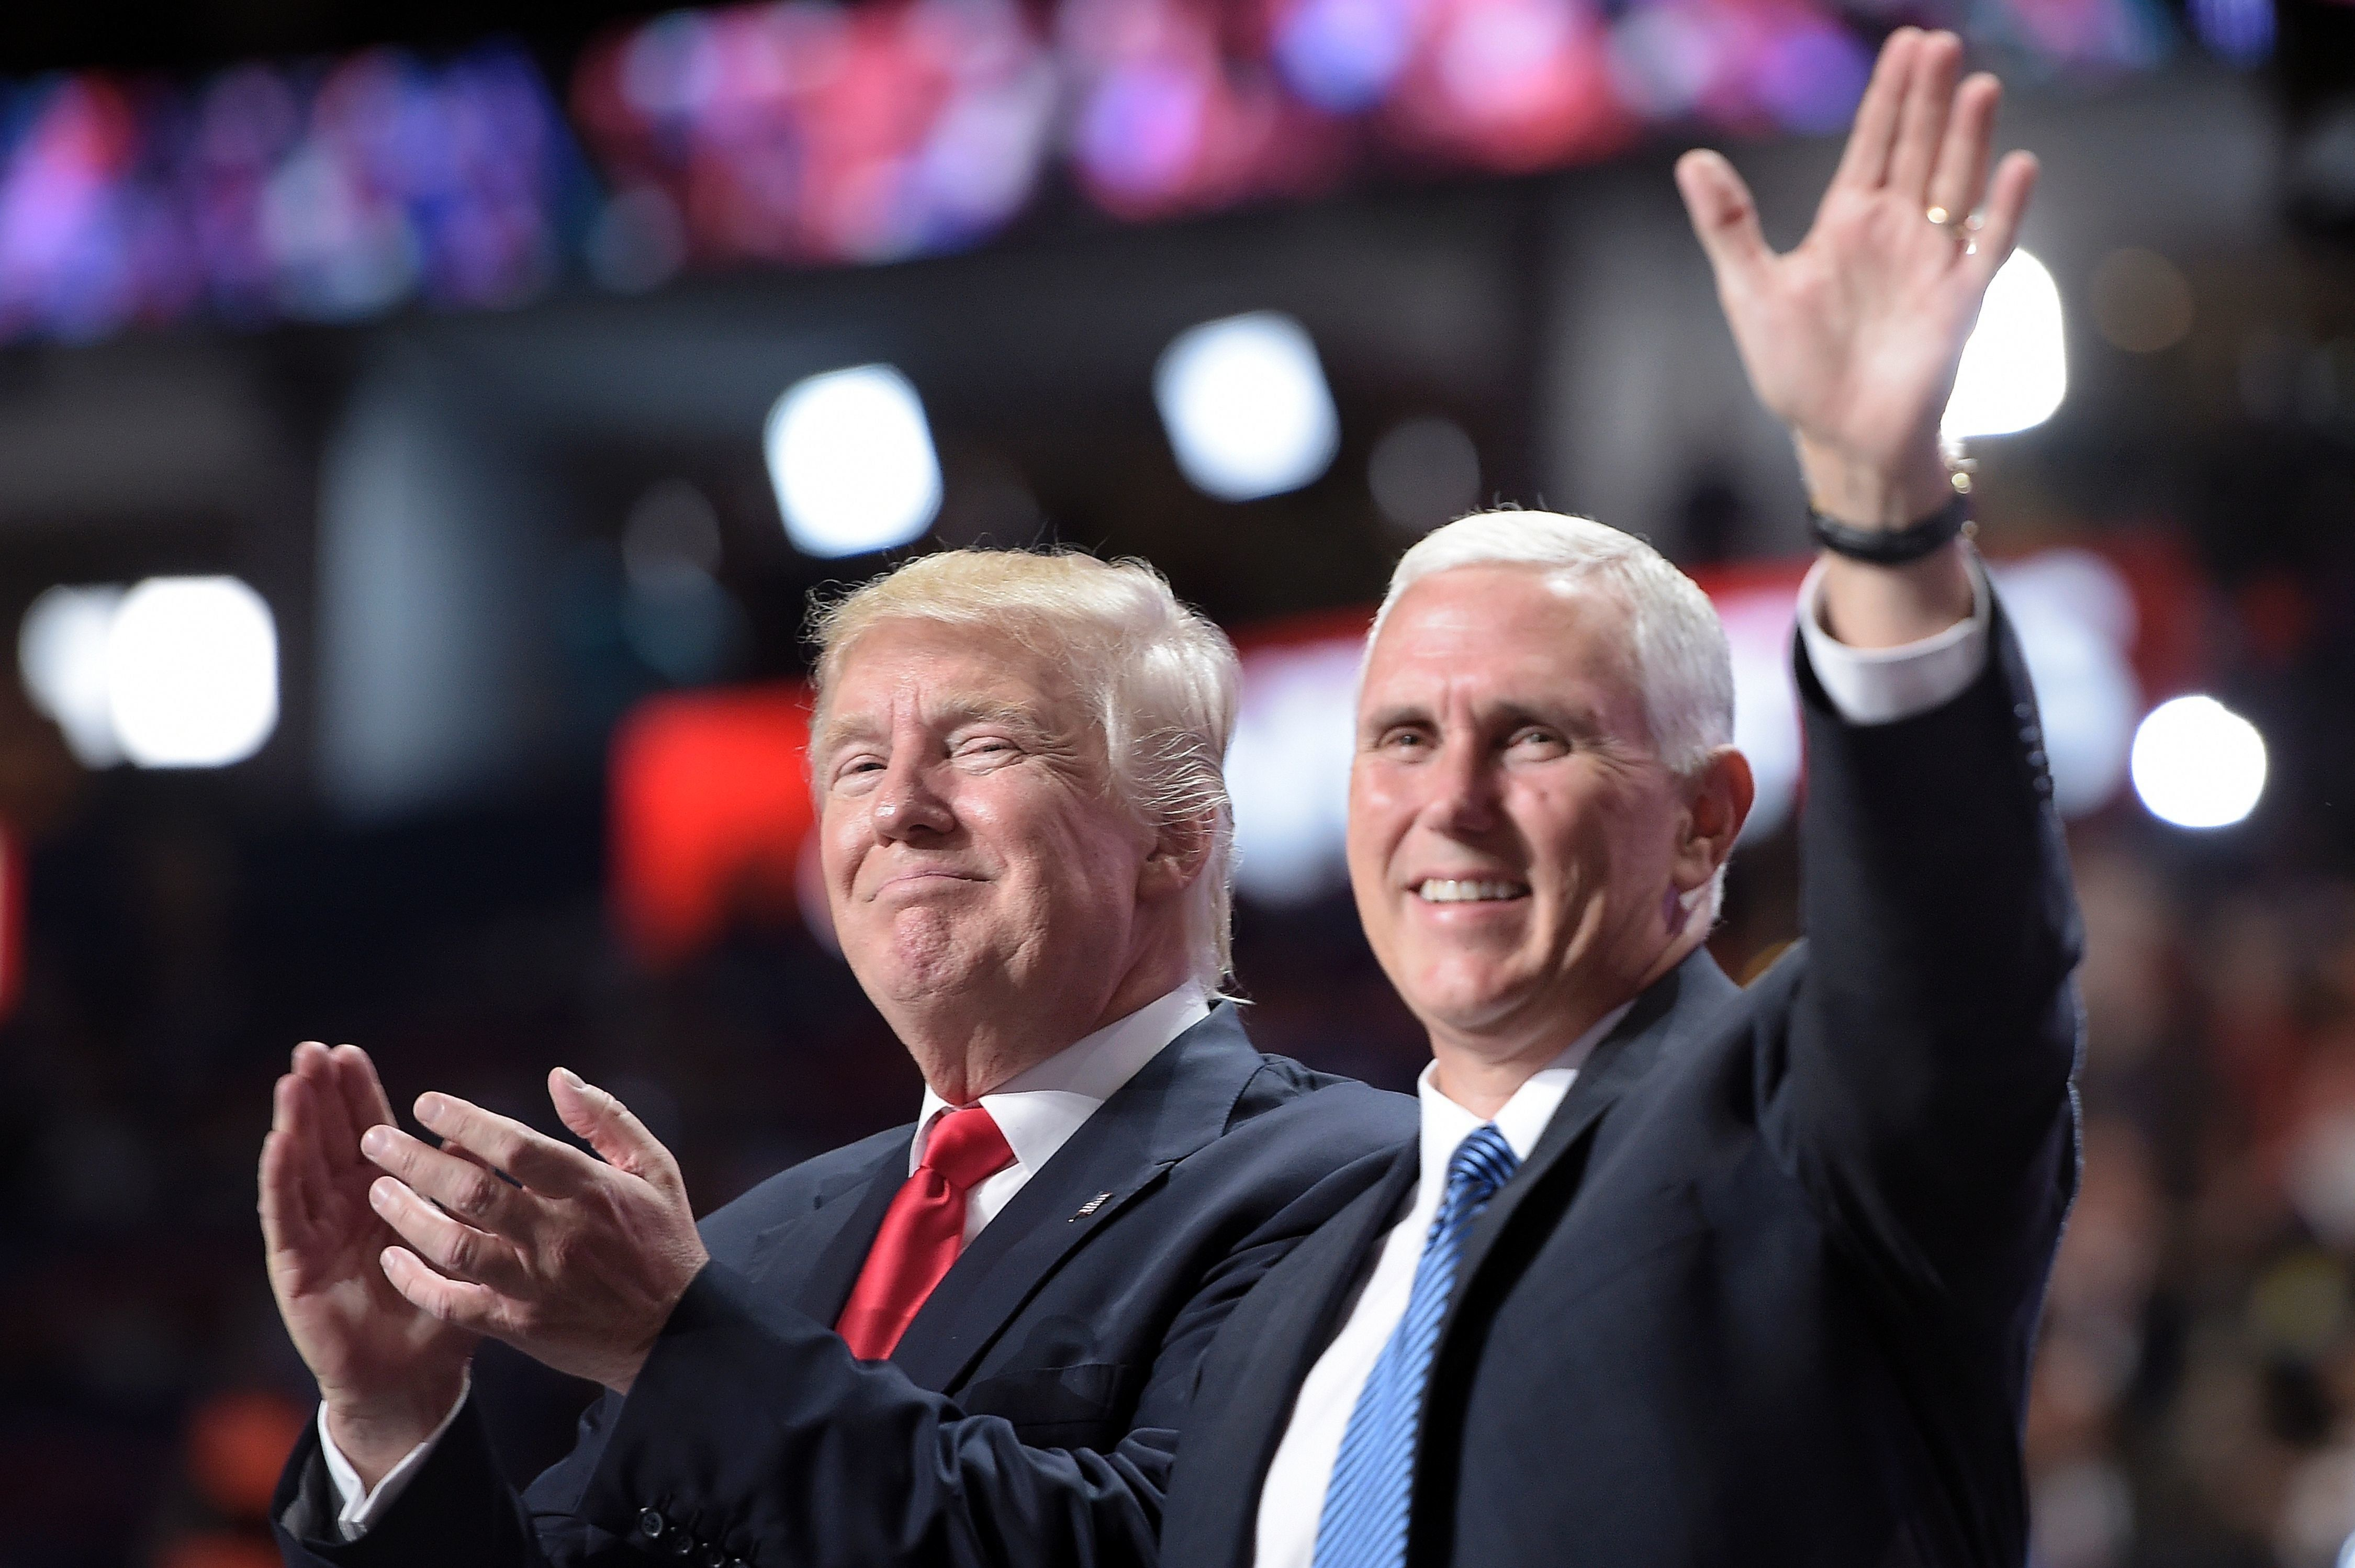 Republican Presidential candidate Donald Trump stands with vice presidential candidate Mike Pence after delivering his acceptance speech during the 2016 Republican National Convention July 21, 2016 in Cleveland, Ohio. / AFP / Brendan Smialowski        (Photo credit should read BRENDAN SMIALOWSKI/AFP/Getty Images)